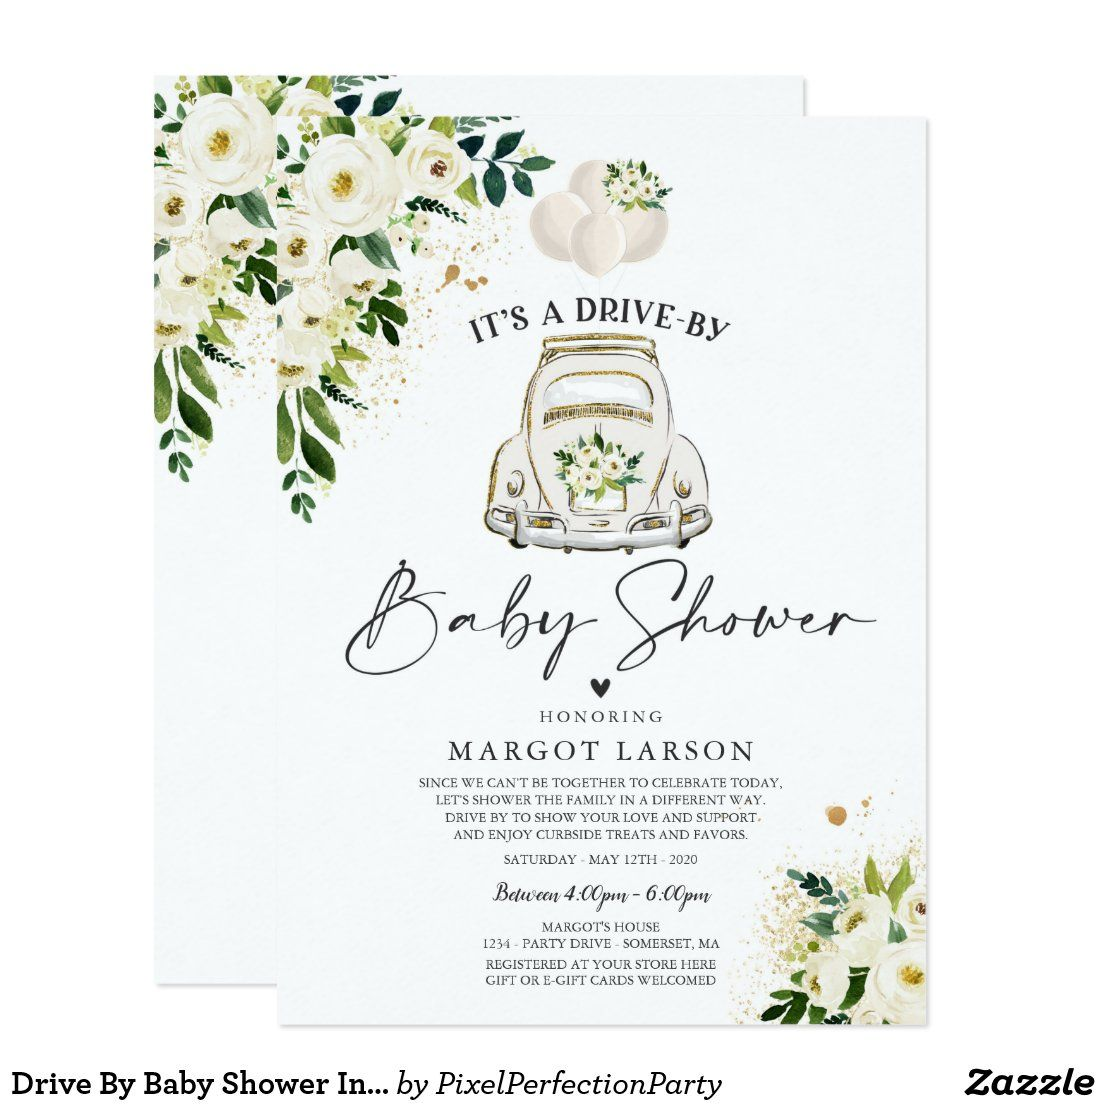 Drive By Baby Shower Invitation Gender Neutral Zazzle